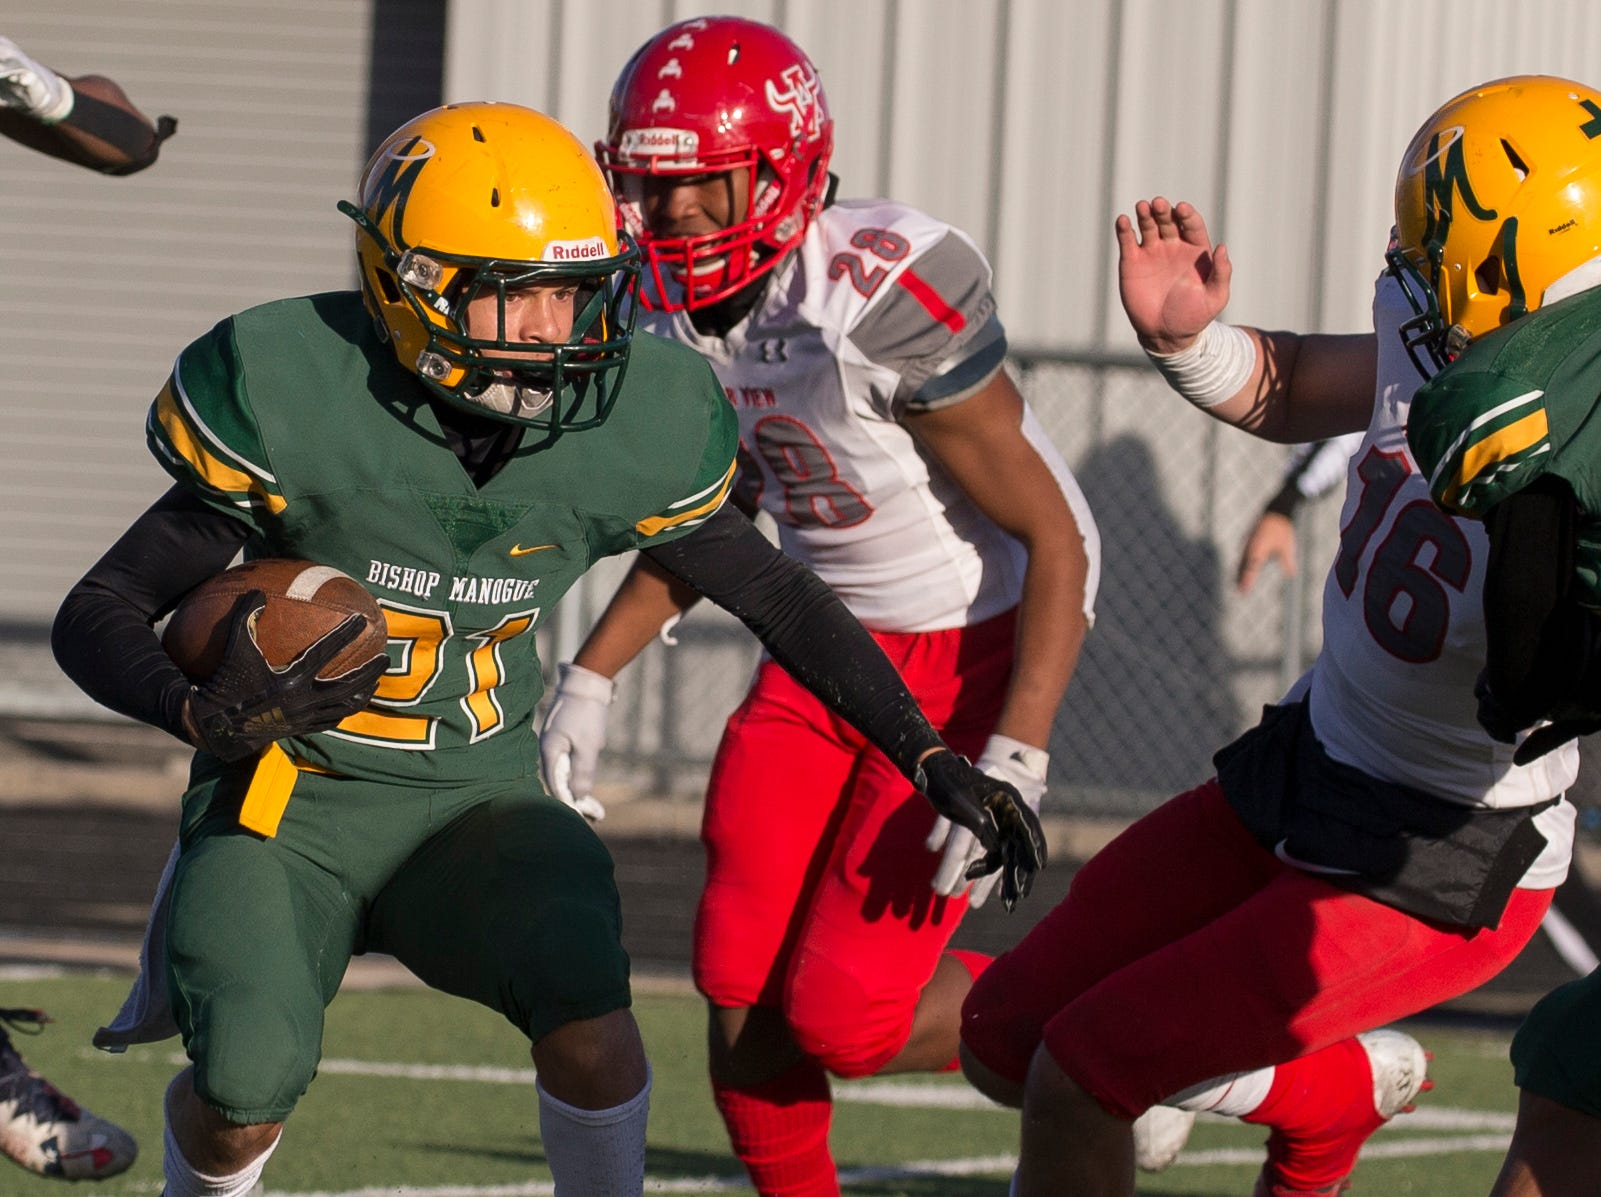 Photos from Arbor View vs Bishop Manogue football playoff game